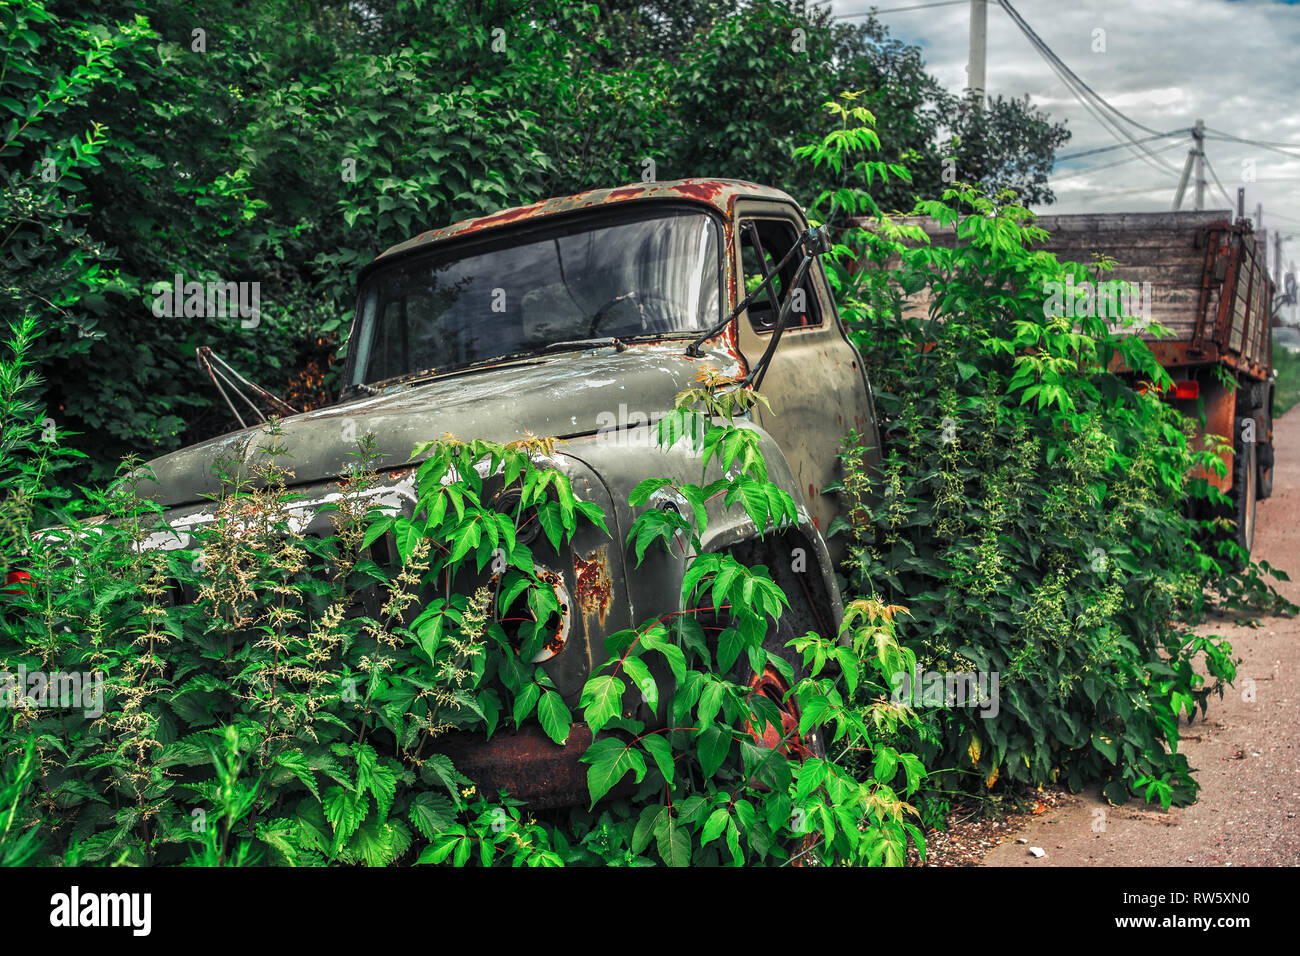 Junk yard vehicles showing old rusted truck in overgrown weedy area - Stock Image